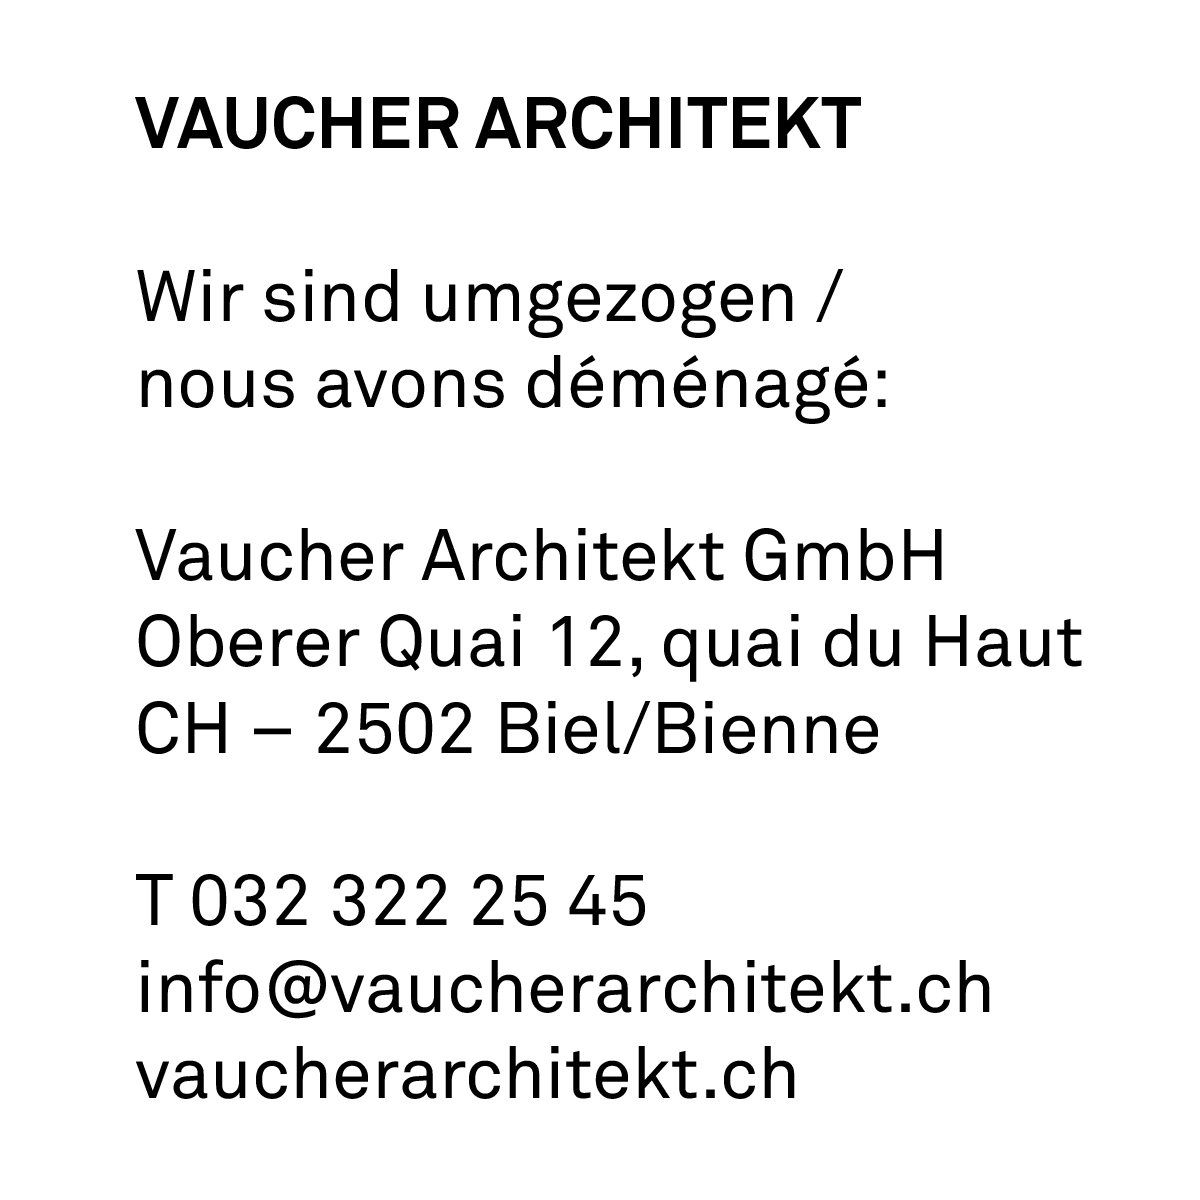 VAUCHER ARCHITEKT